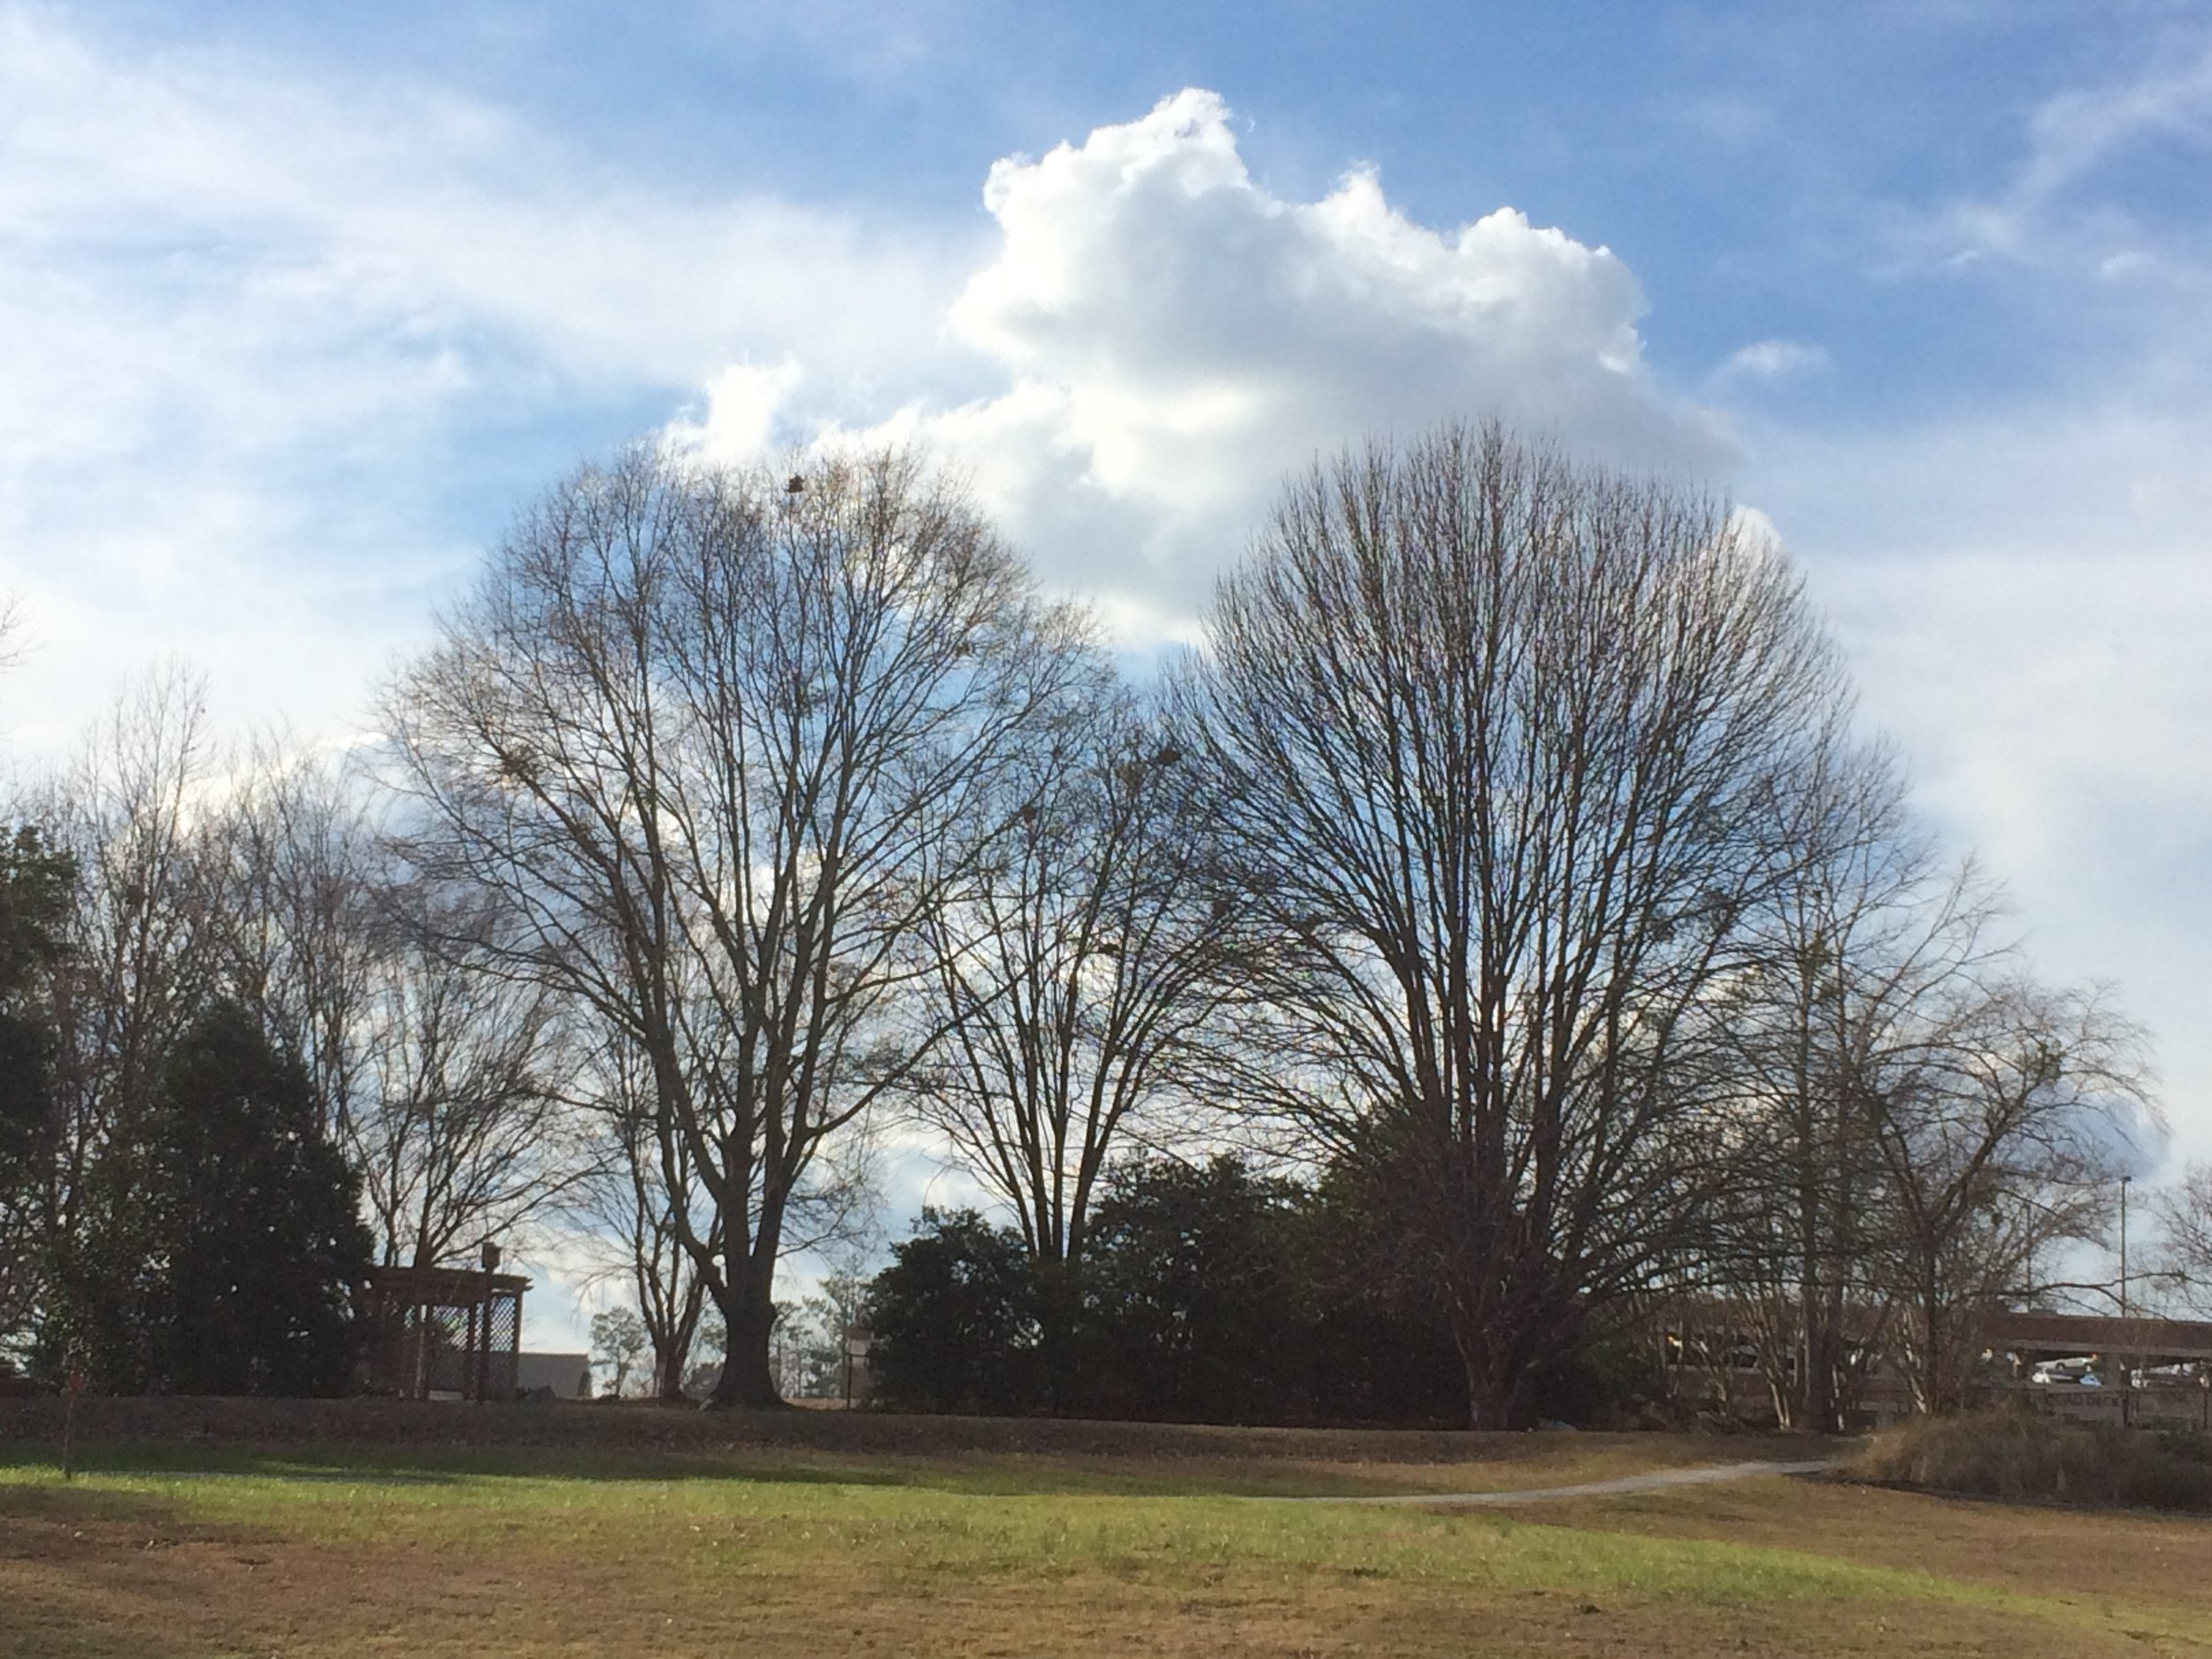 This area features many public parks to walk in. This is at the Donald E. Davis Arboretum at Auburn University.